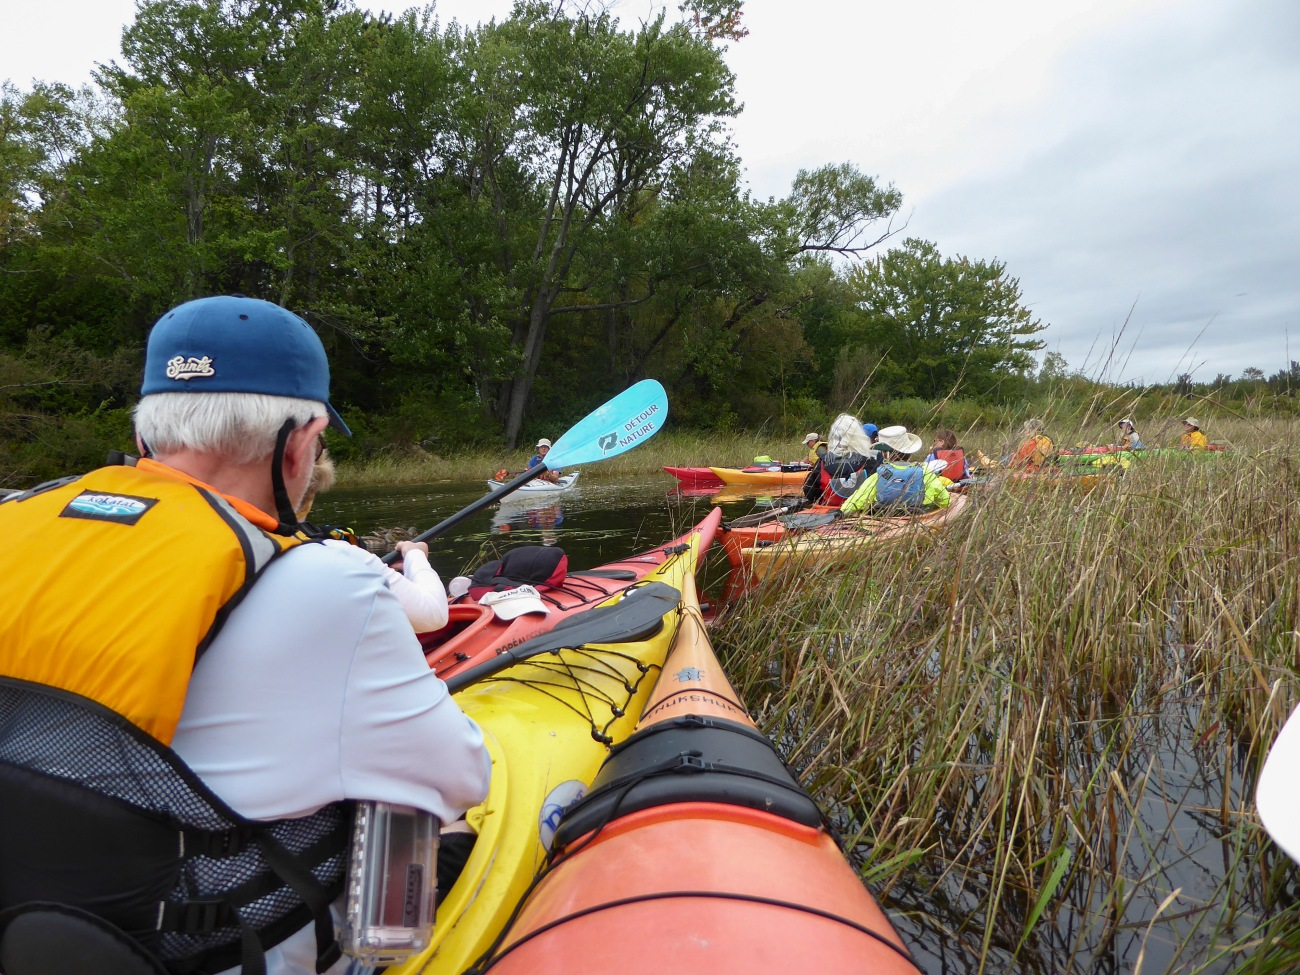 20180918_105843_Staging kayaks in the grass before passing through the culvert into Brome Lake